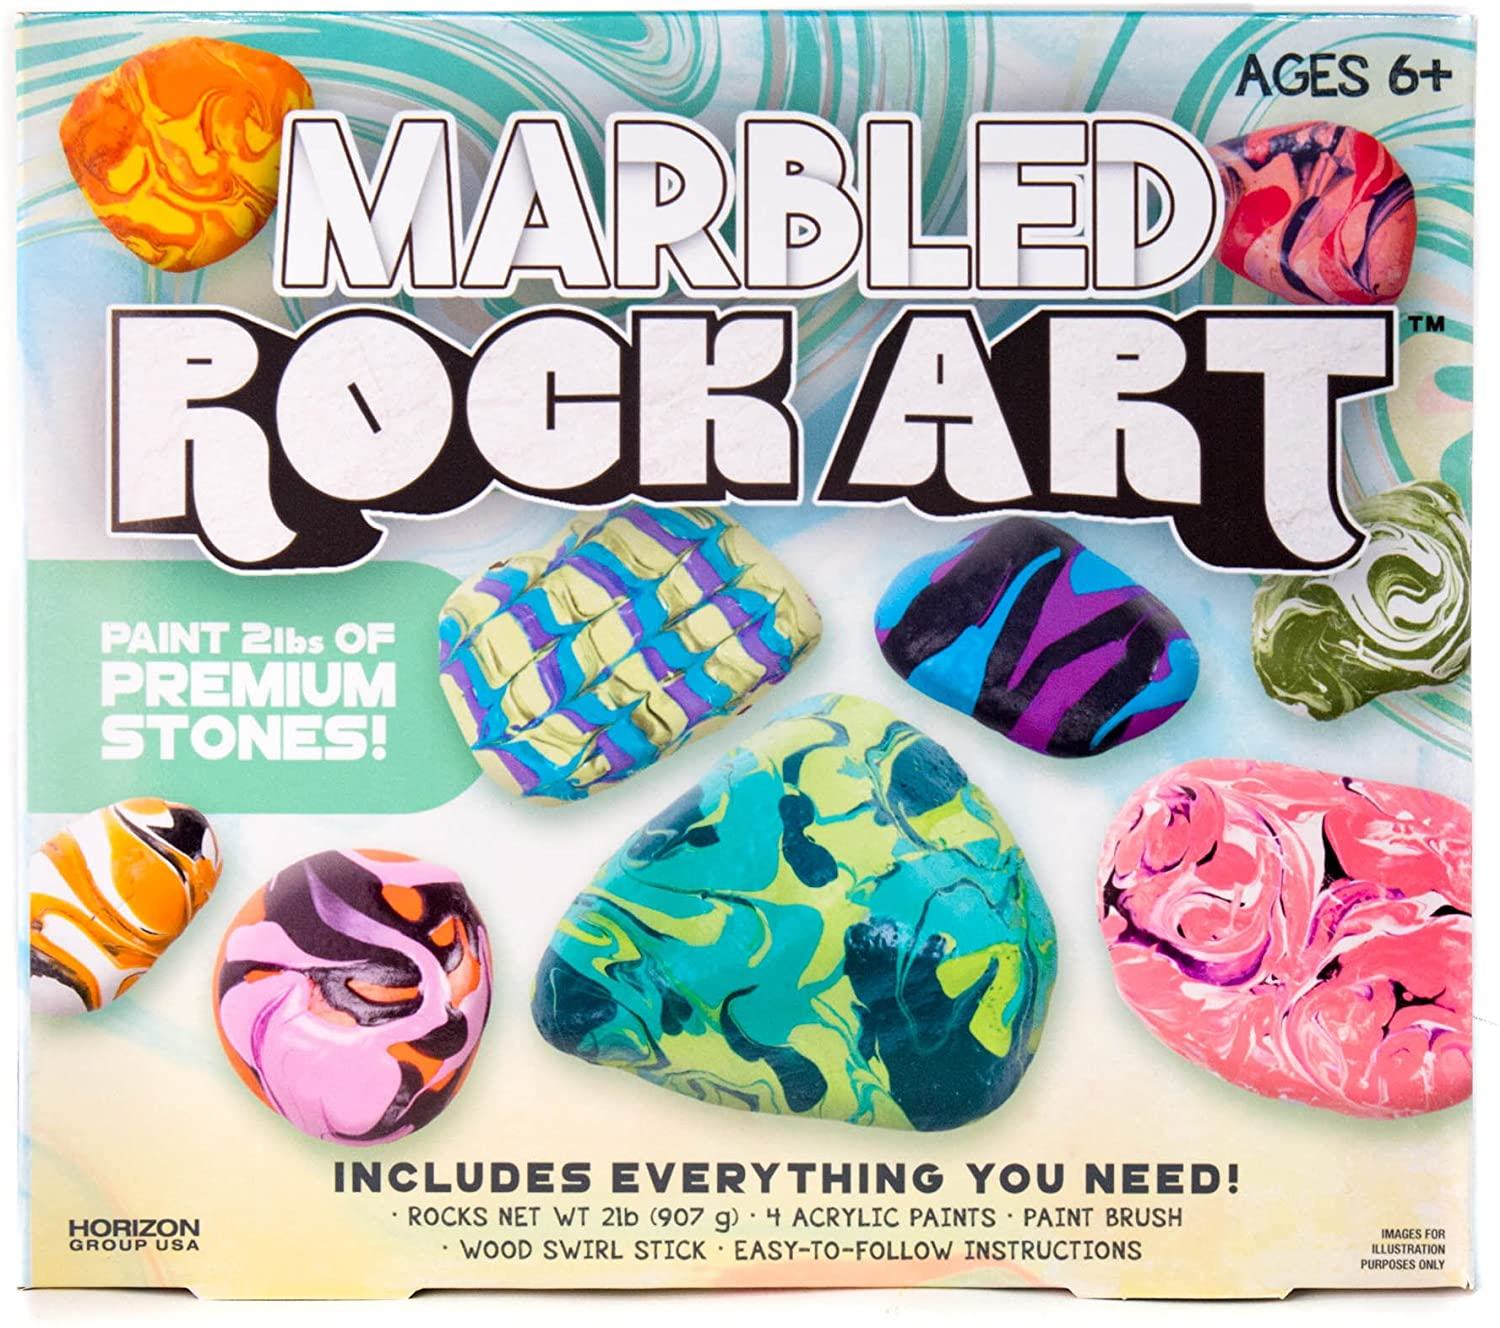 Marbled Rock Art Kit Only $7.99!